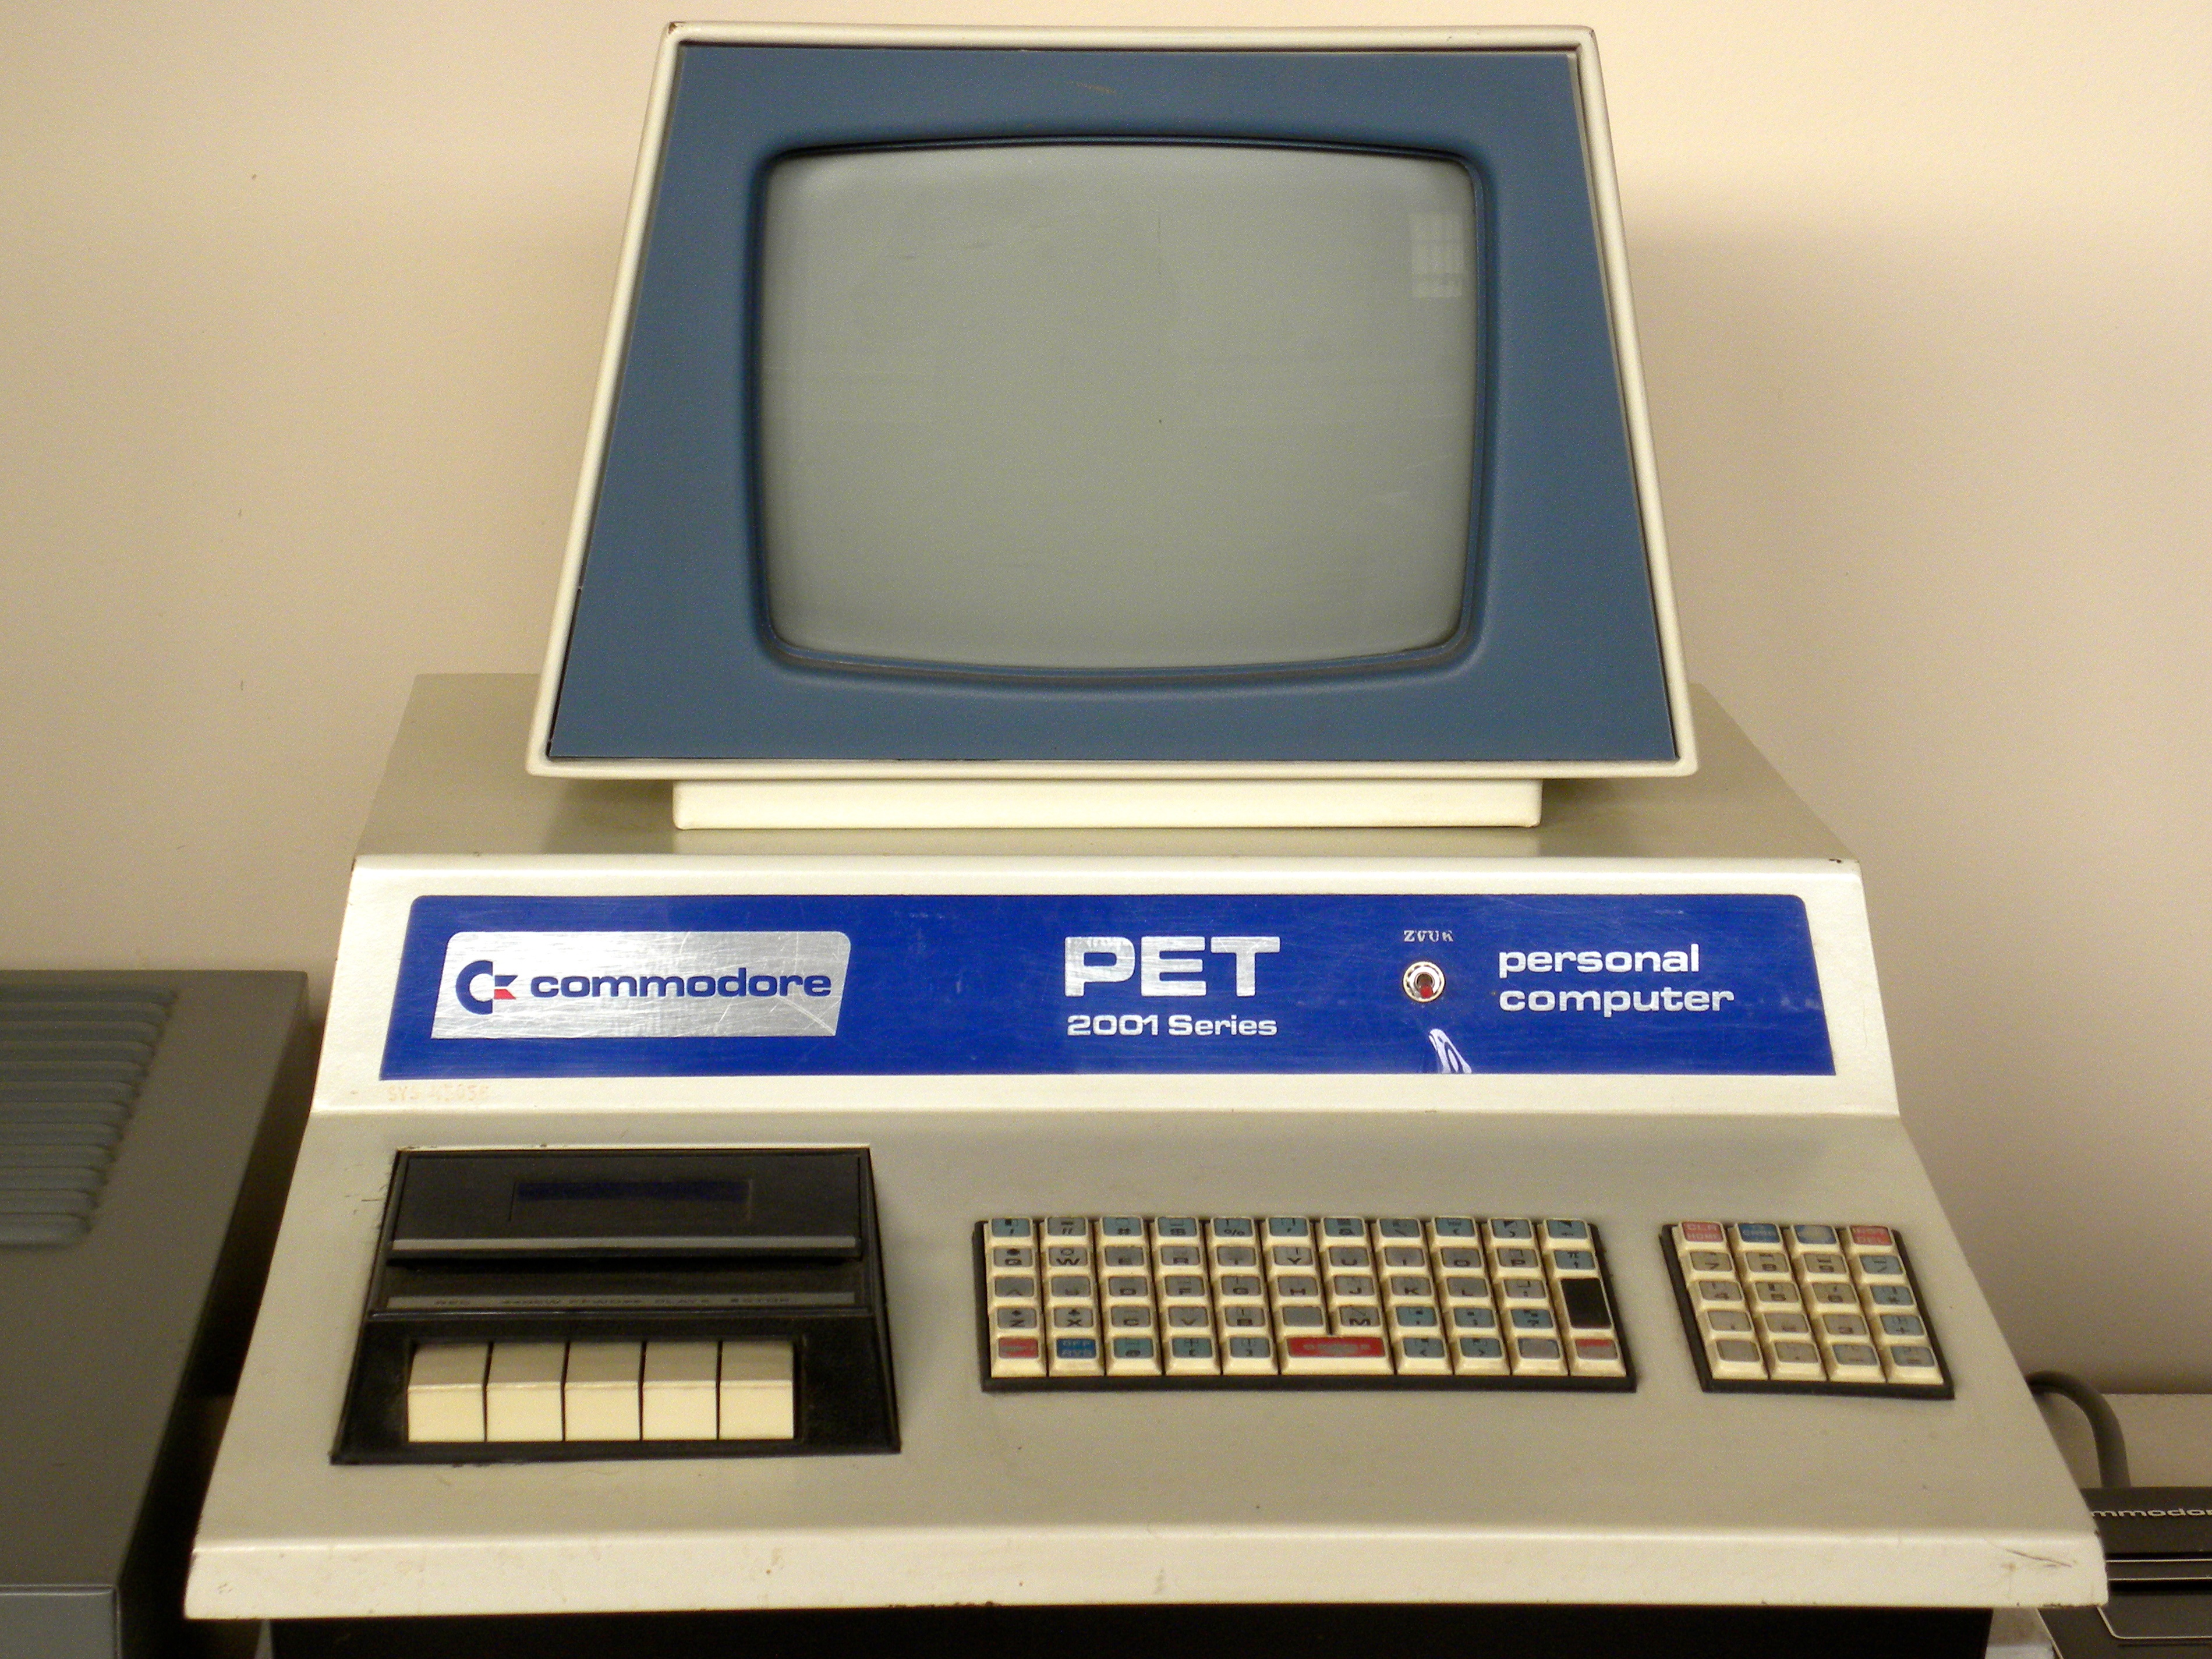 High Resolution Wallpaper | Commodore PET 2001 3799x2849 px